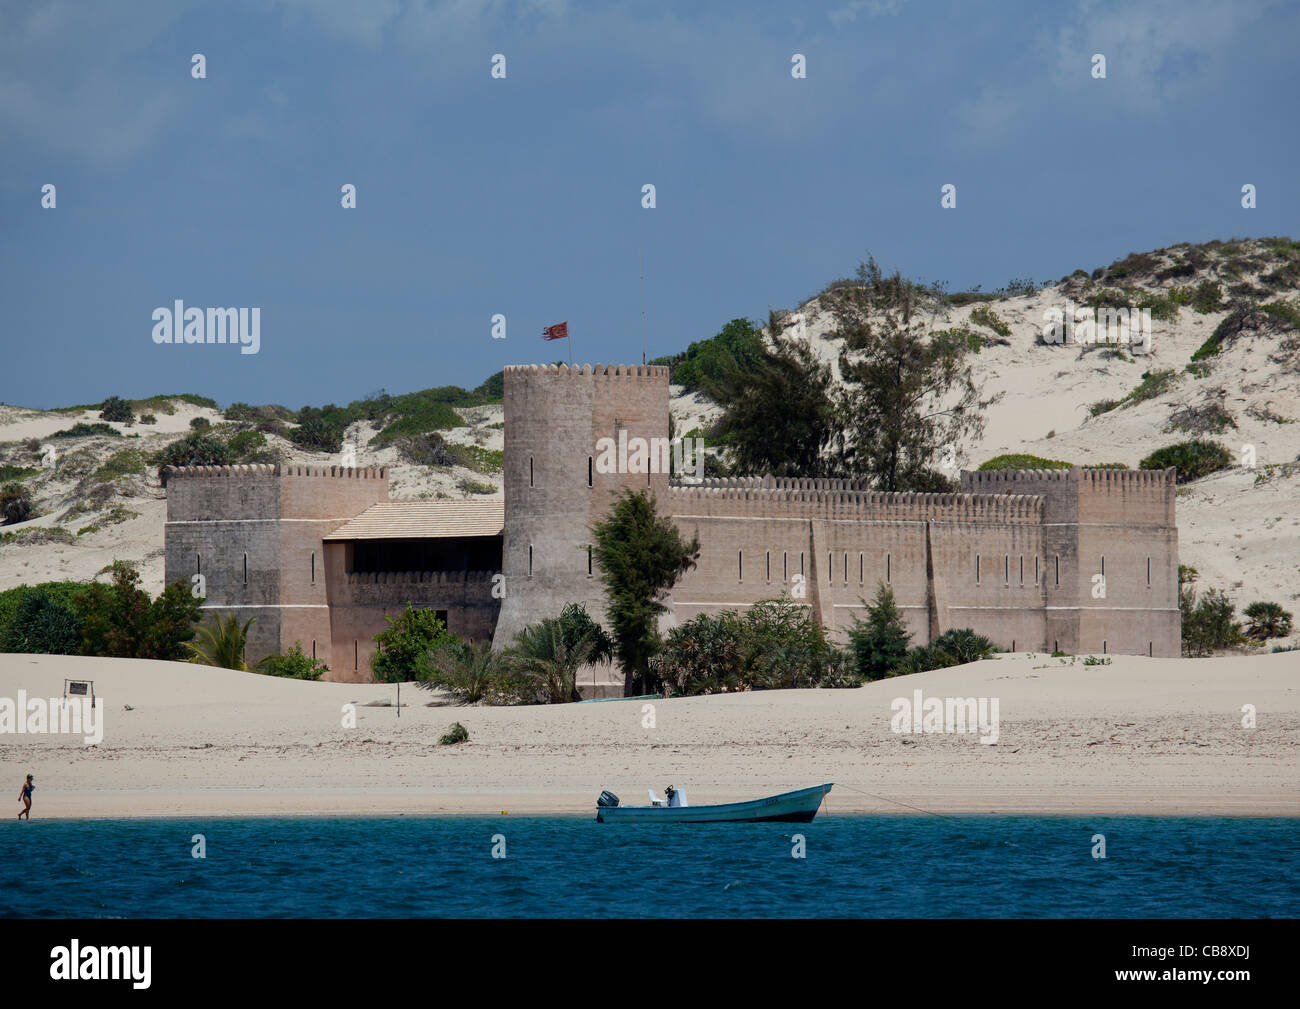 Lamu Kenya  city photos gallery : The Fort Hotel, Shela, Lamu, Kenya Stock Photo, Royalty Free Image ...